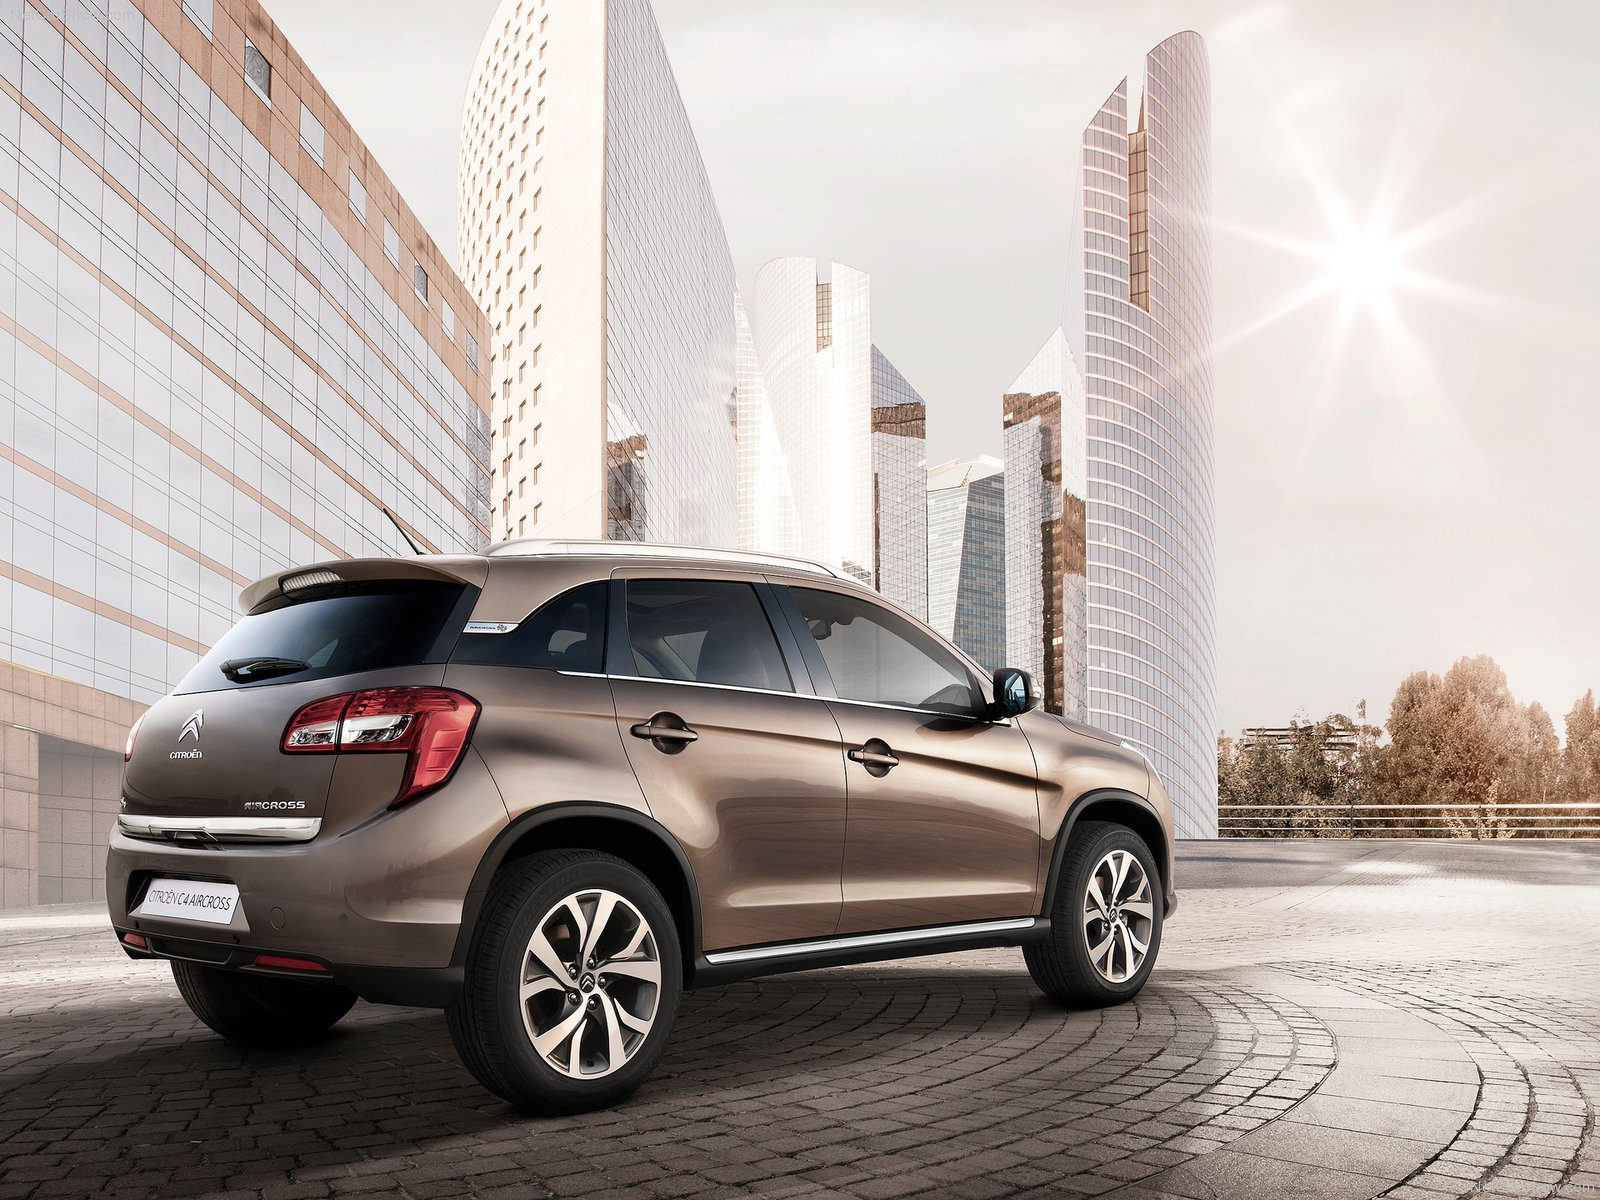 Citroen C4 Aircross photo 84901